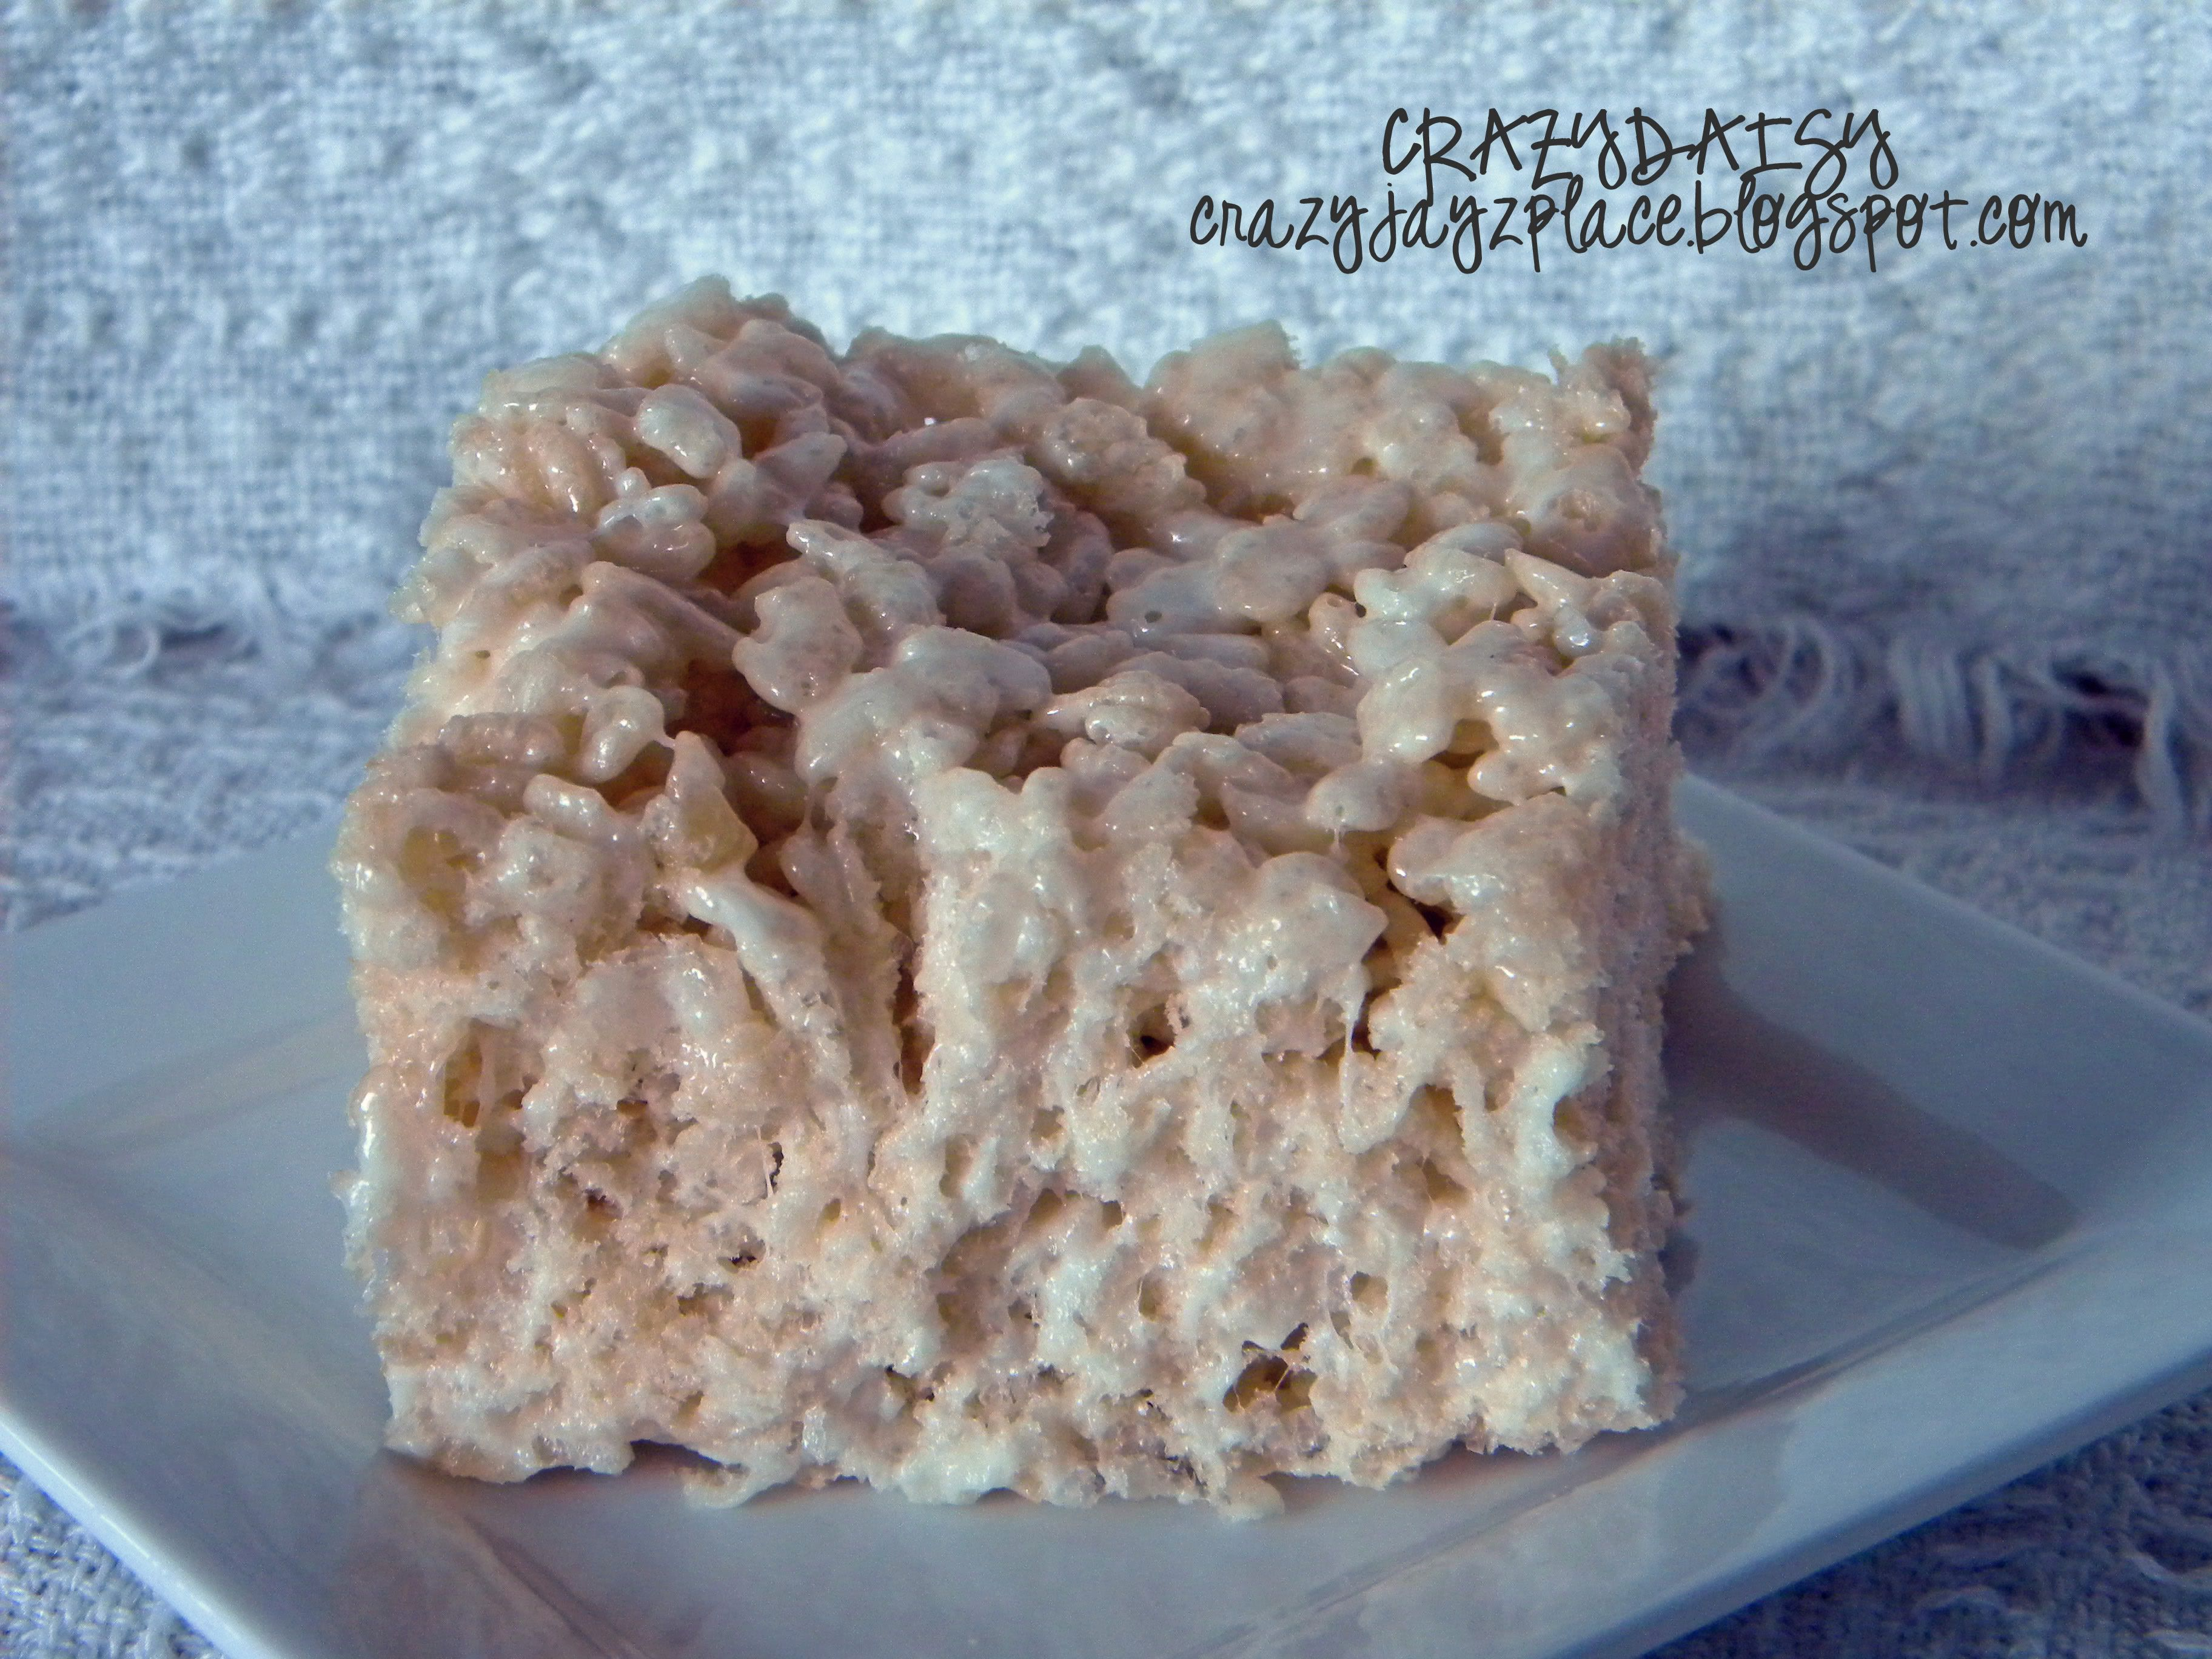 Ultimate Rice Krispie Treats - YEA! Ooey gooey marshmallow deliciousness. The ratio of butter, rice krispies, and marshmallow makes all the difference.